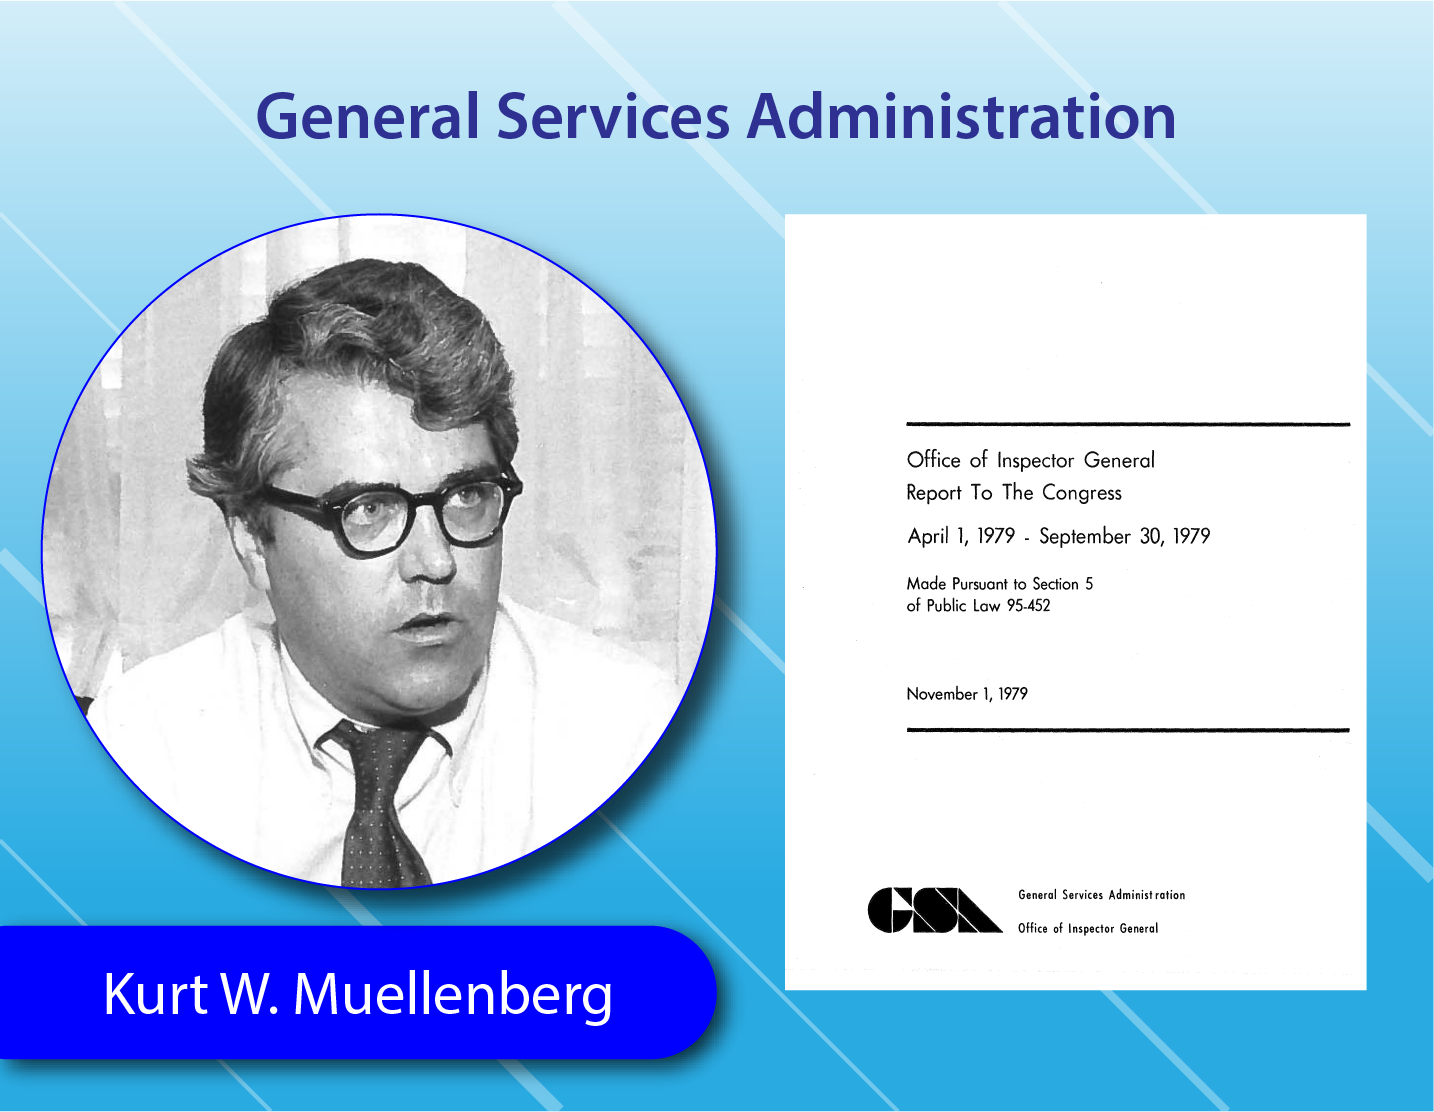 General Services Administration - Kurt W. Muellenberg